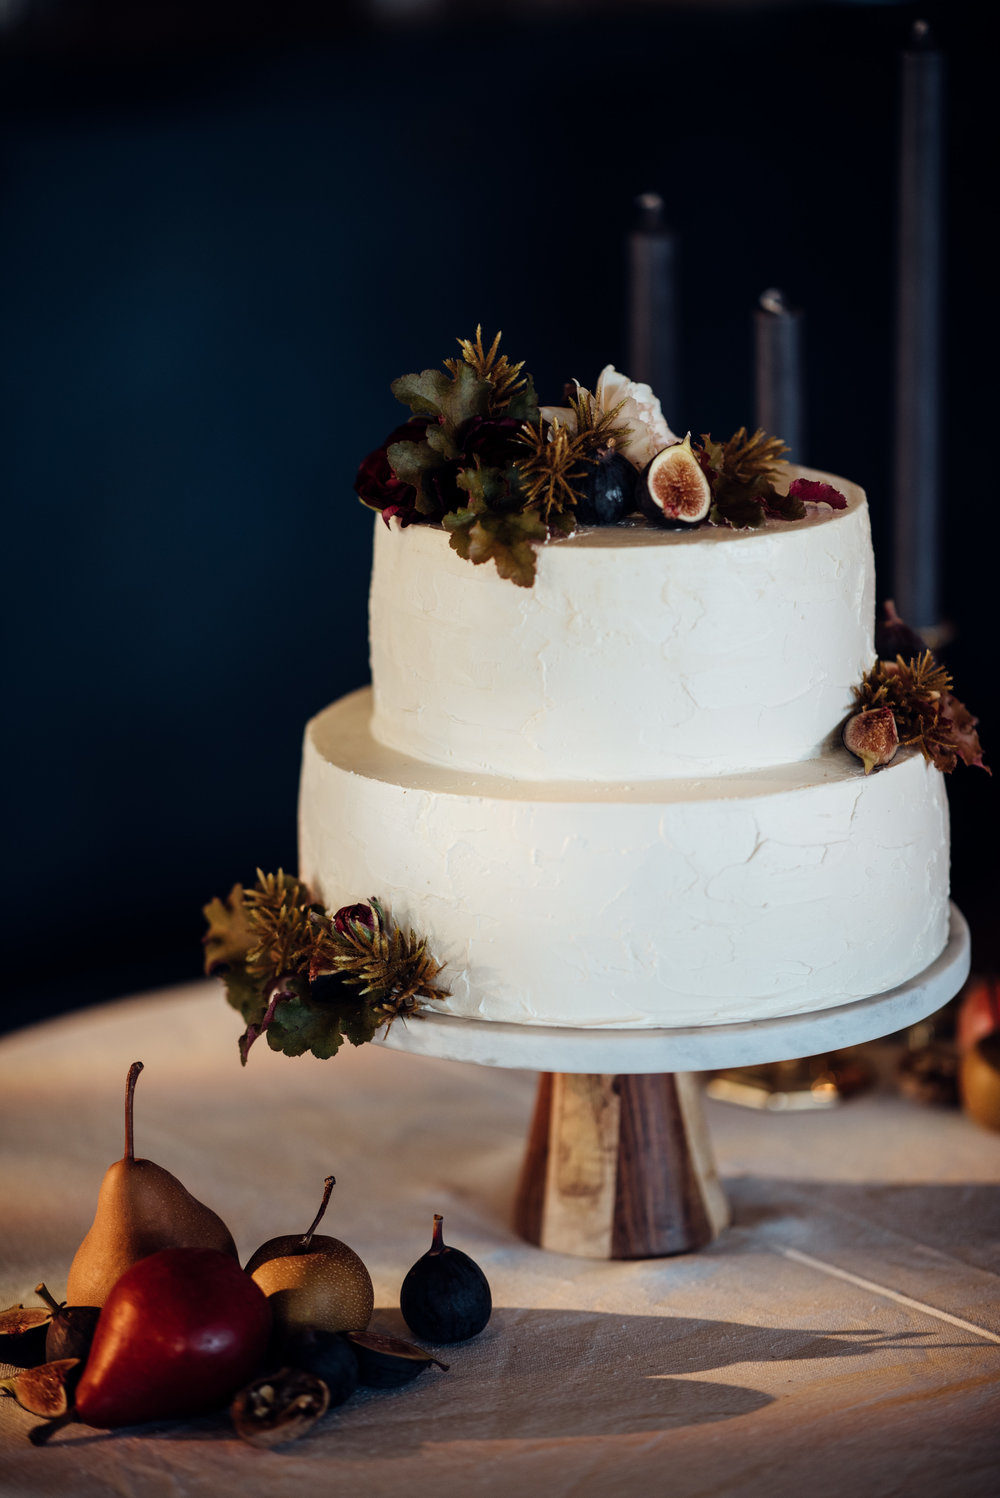 Dutch Modern cake by Cake Bloom - Duy Ho Photography